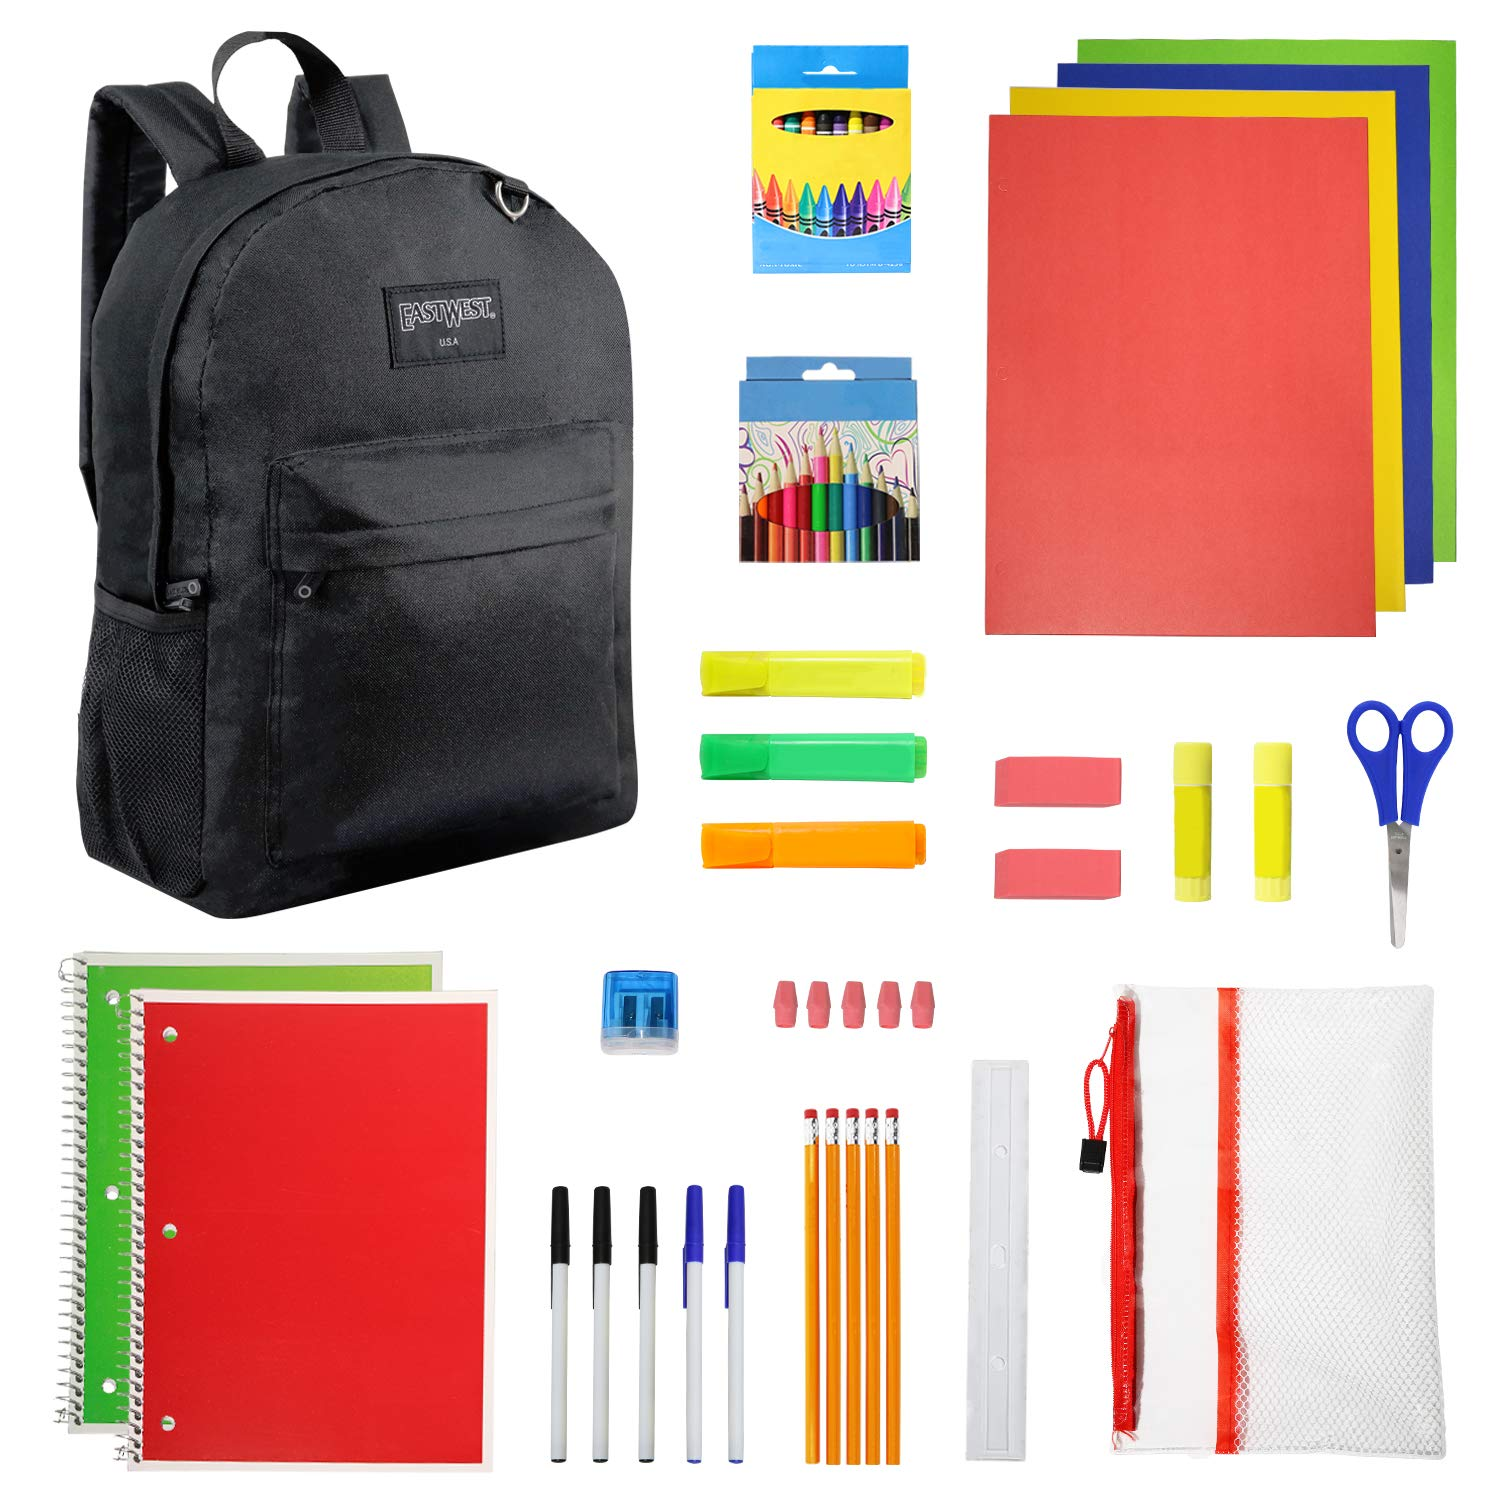 17 Inch Black Backpack with 52 Piece School Supply Kit - School Supply Bundle Pack for Boys and Girls